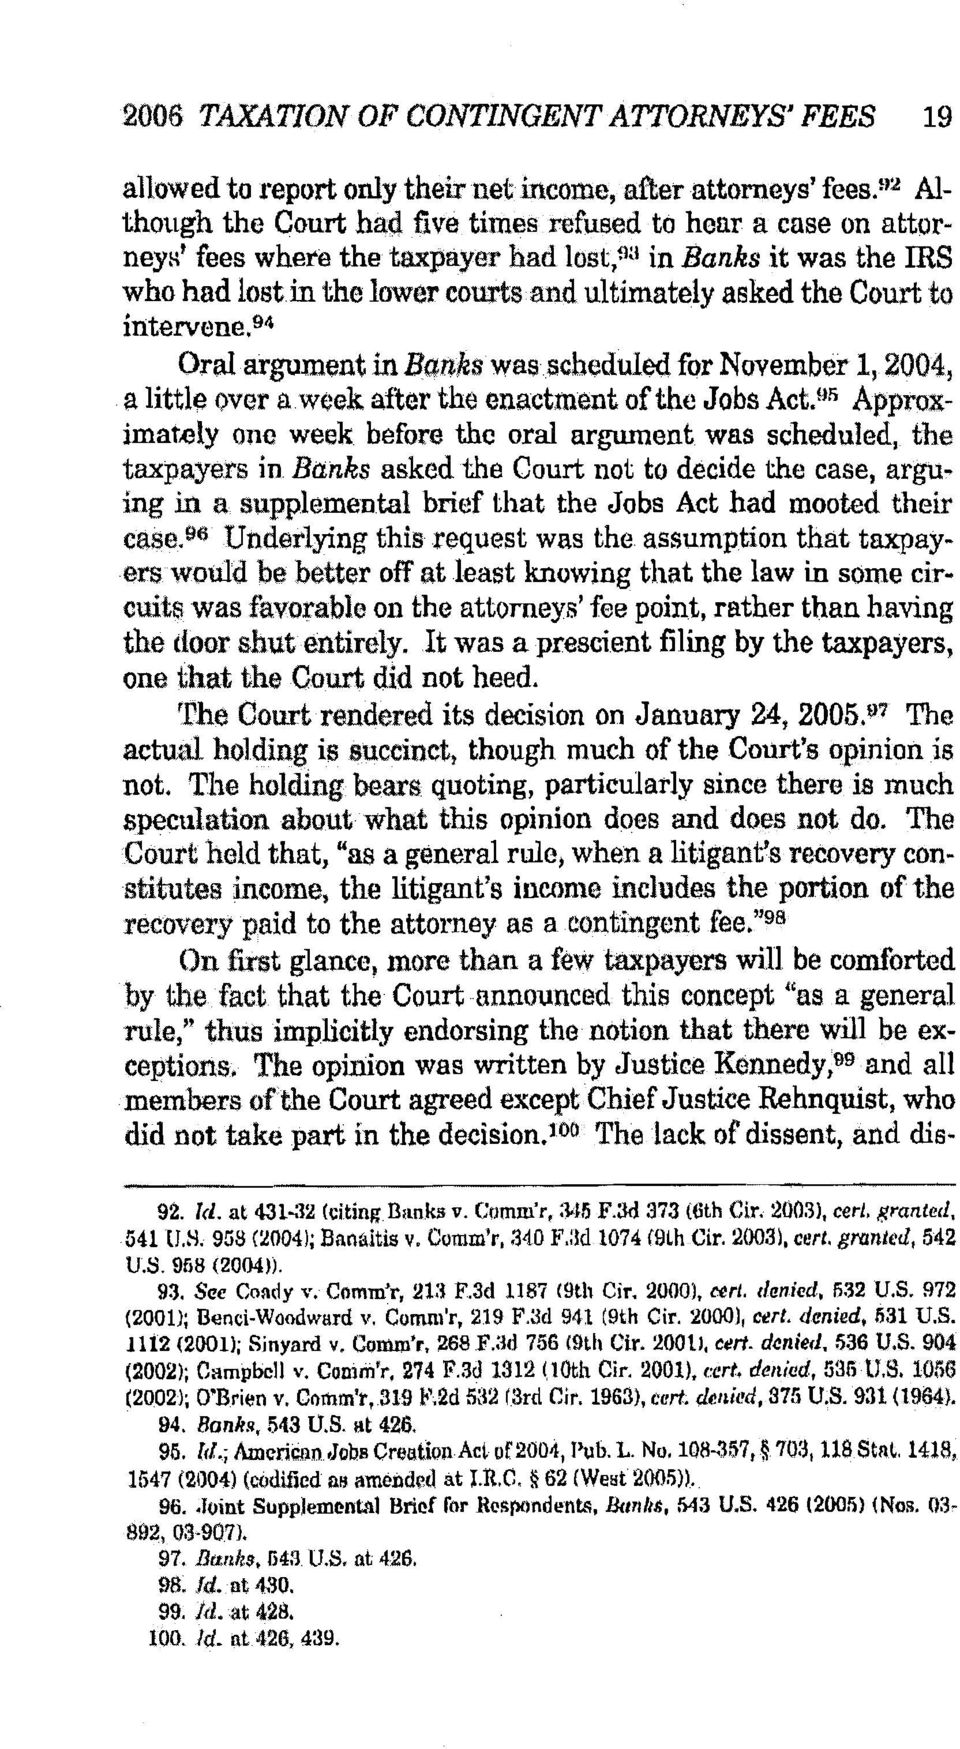 Court to intervene. o4 OralargumentinBanks was$cheduled for November 1, 2004, a little over aweek after the enactment of the Jobs Act.